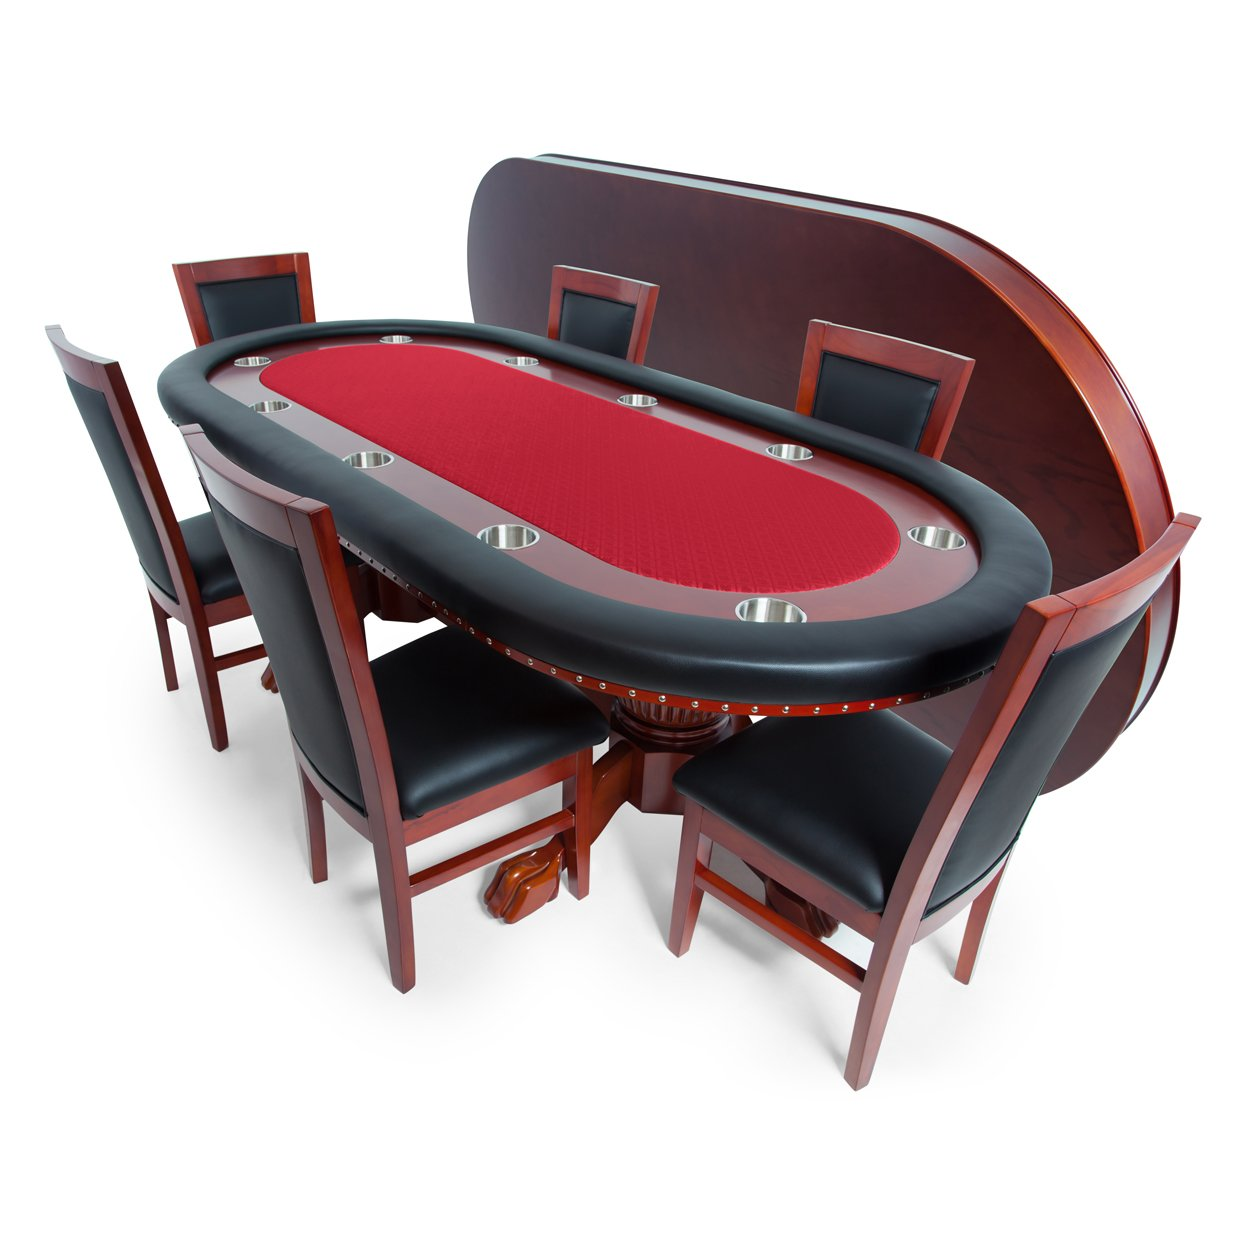 BBO Poker Rockwell Poker Table for 10 Players with Red Speed Cloth Playing Surface, 94 x 44-Inch Oval, Includes Matching Dining Top with 6 Dining Chairs by BBO Poker